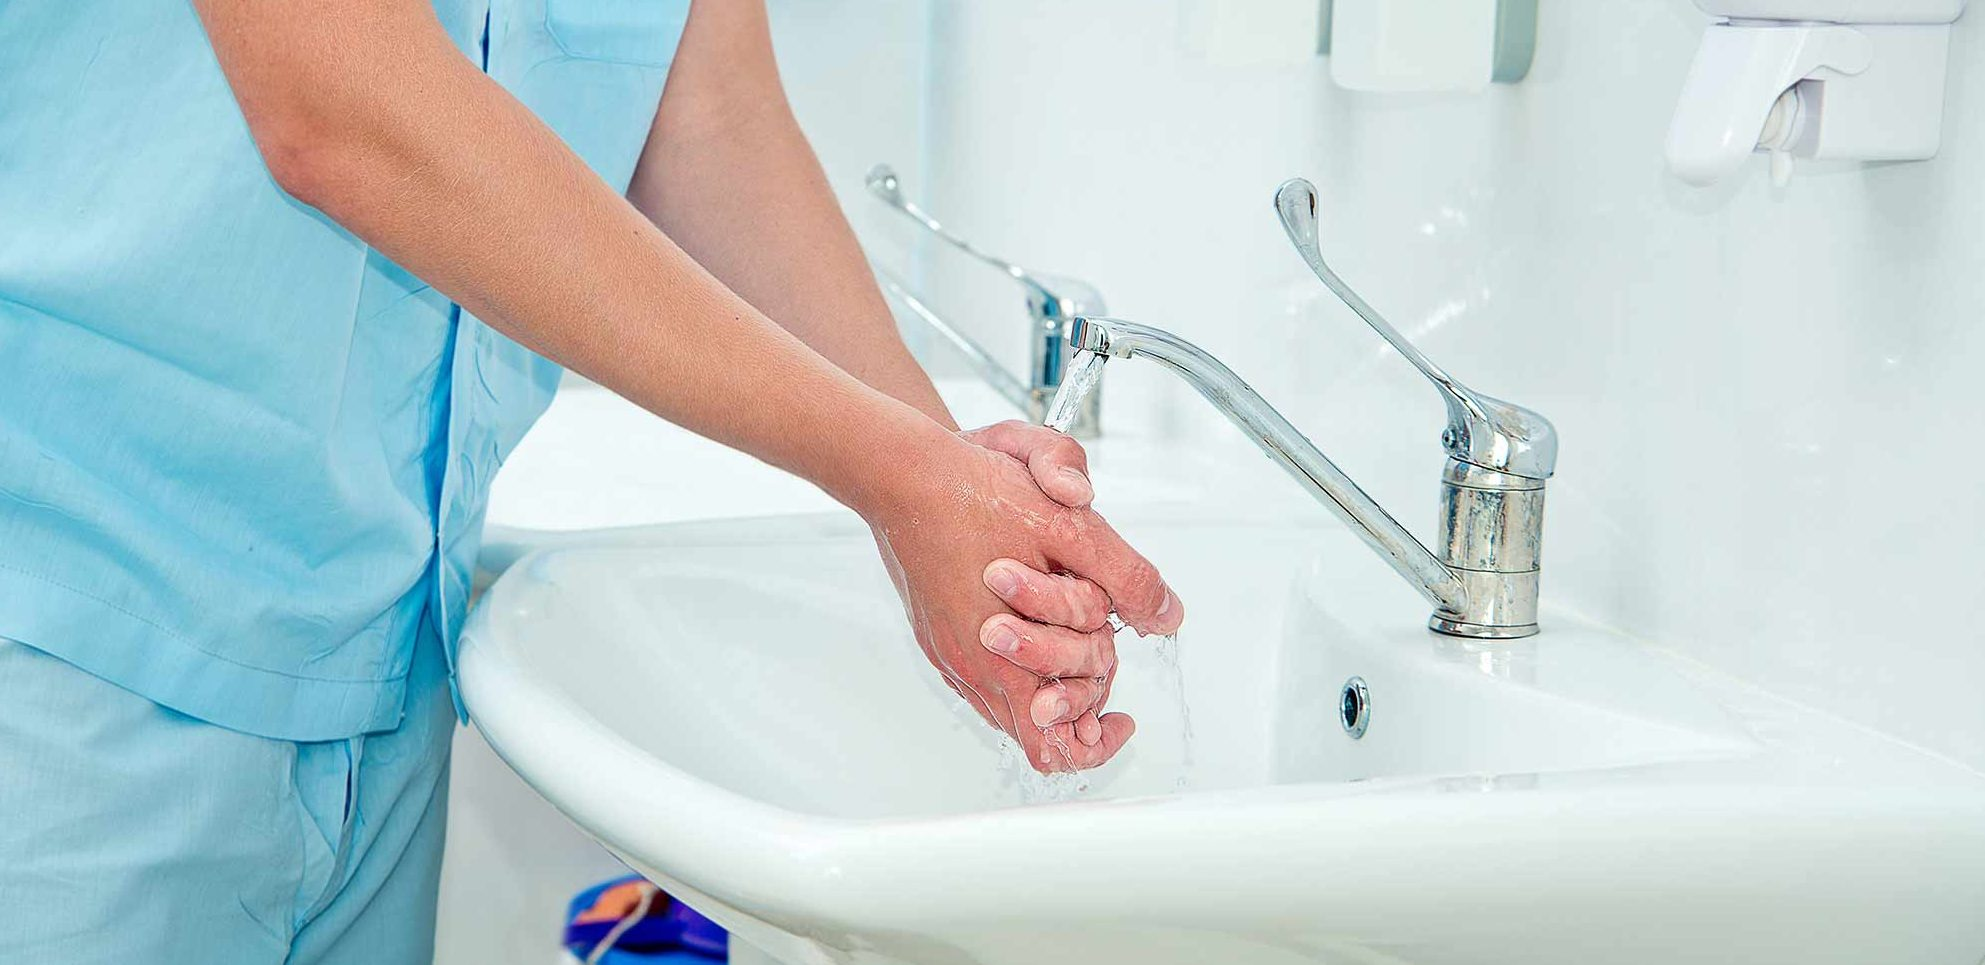 New infection control guidance has been issued for healthcare settings in the UK, including dental practices